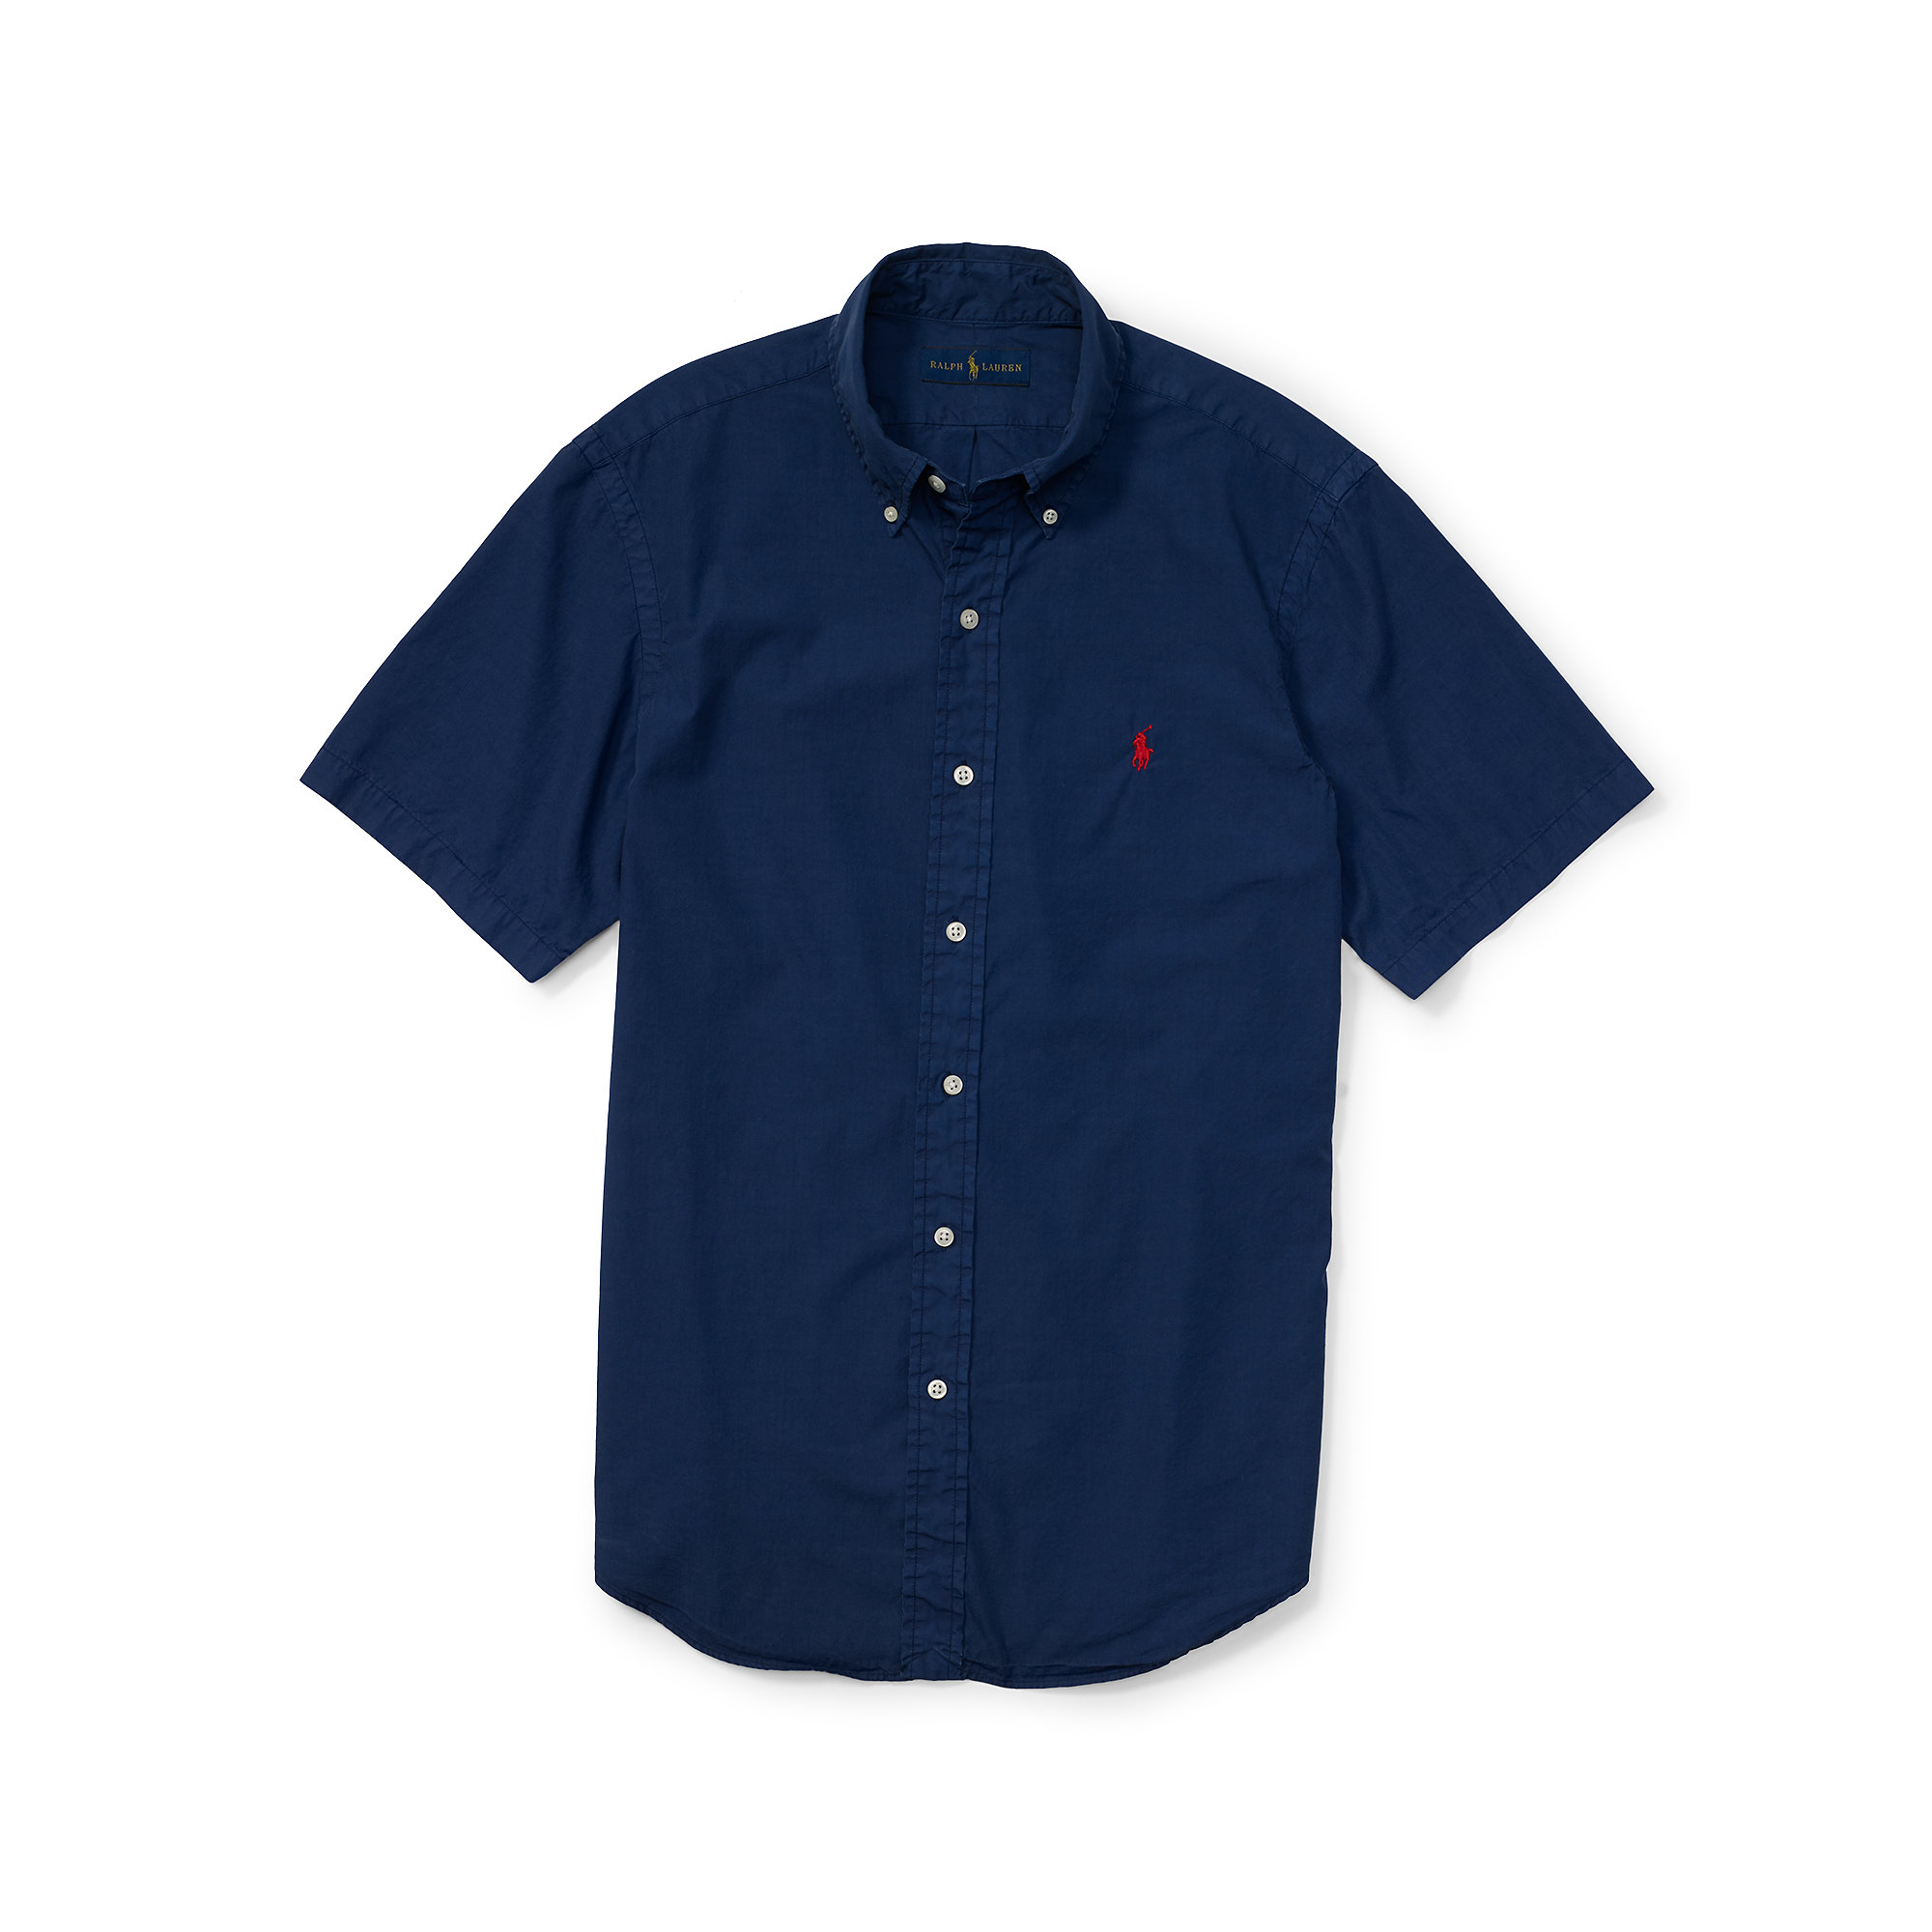 Short Sleeve Ralph Lauren Shirt Navy - BCD Tofu House 94a28fededfc